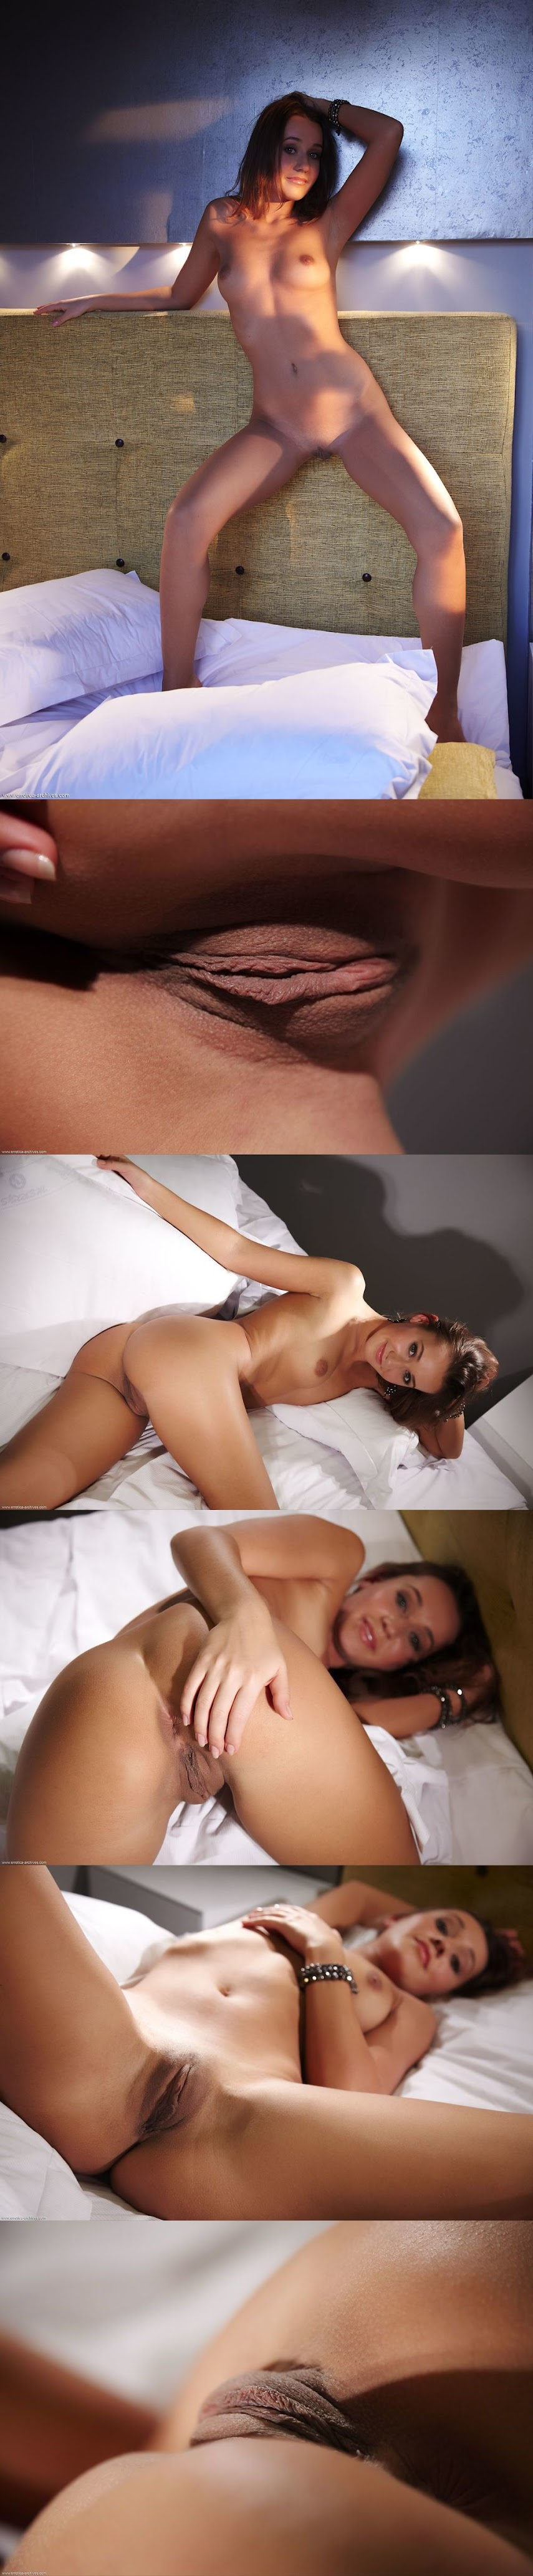 errotica-archives  2013-10-10 coco - raylight x62 2883x4324Real Street Angels